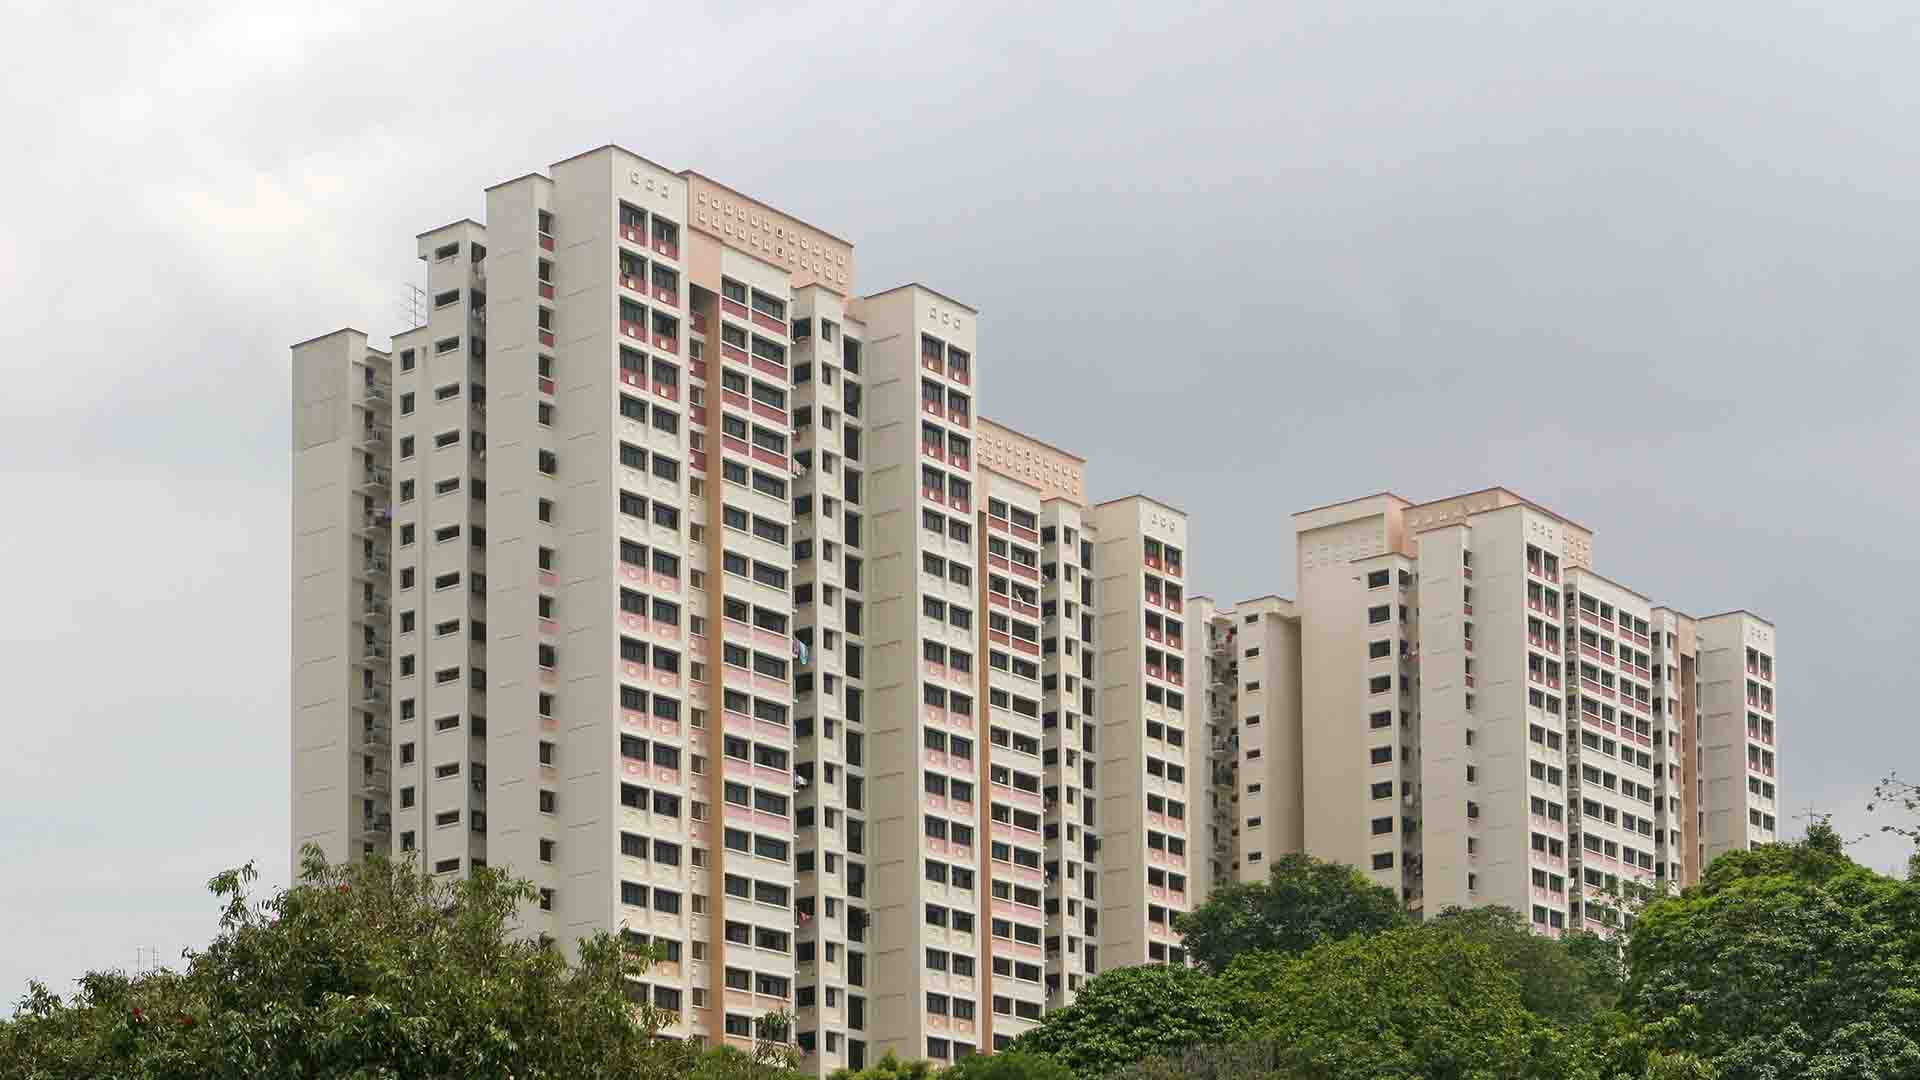 With Lakhs Of Unsold Residential Units, The Real Estate Market To Stay Buyer-Friendly In 2018